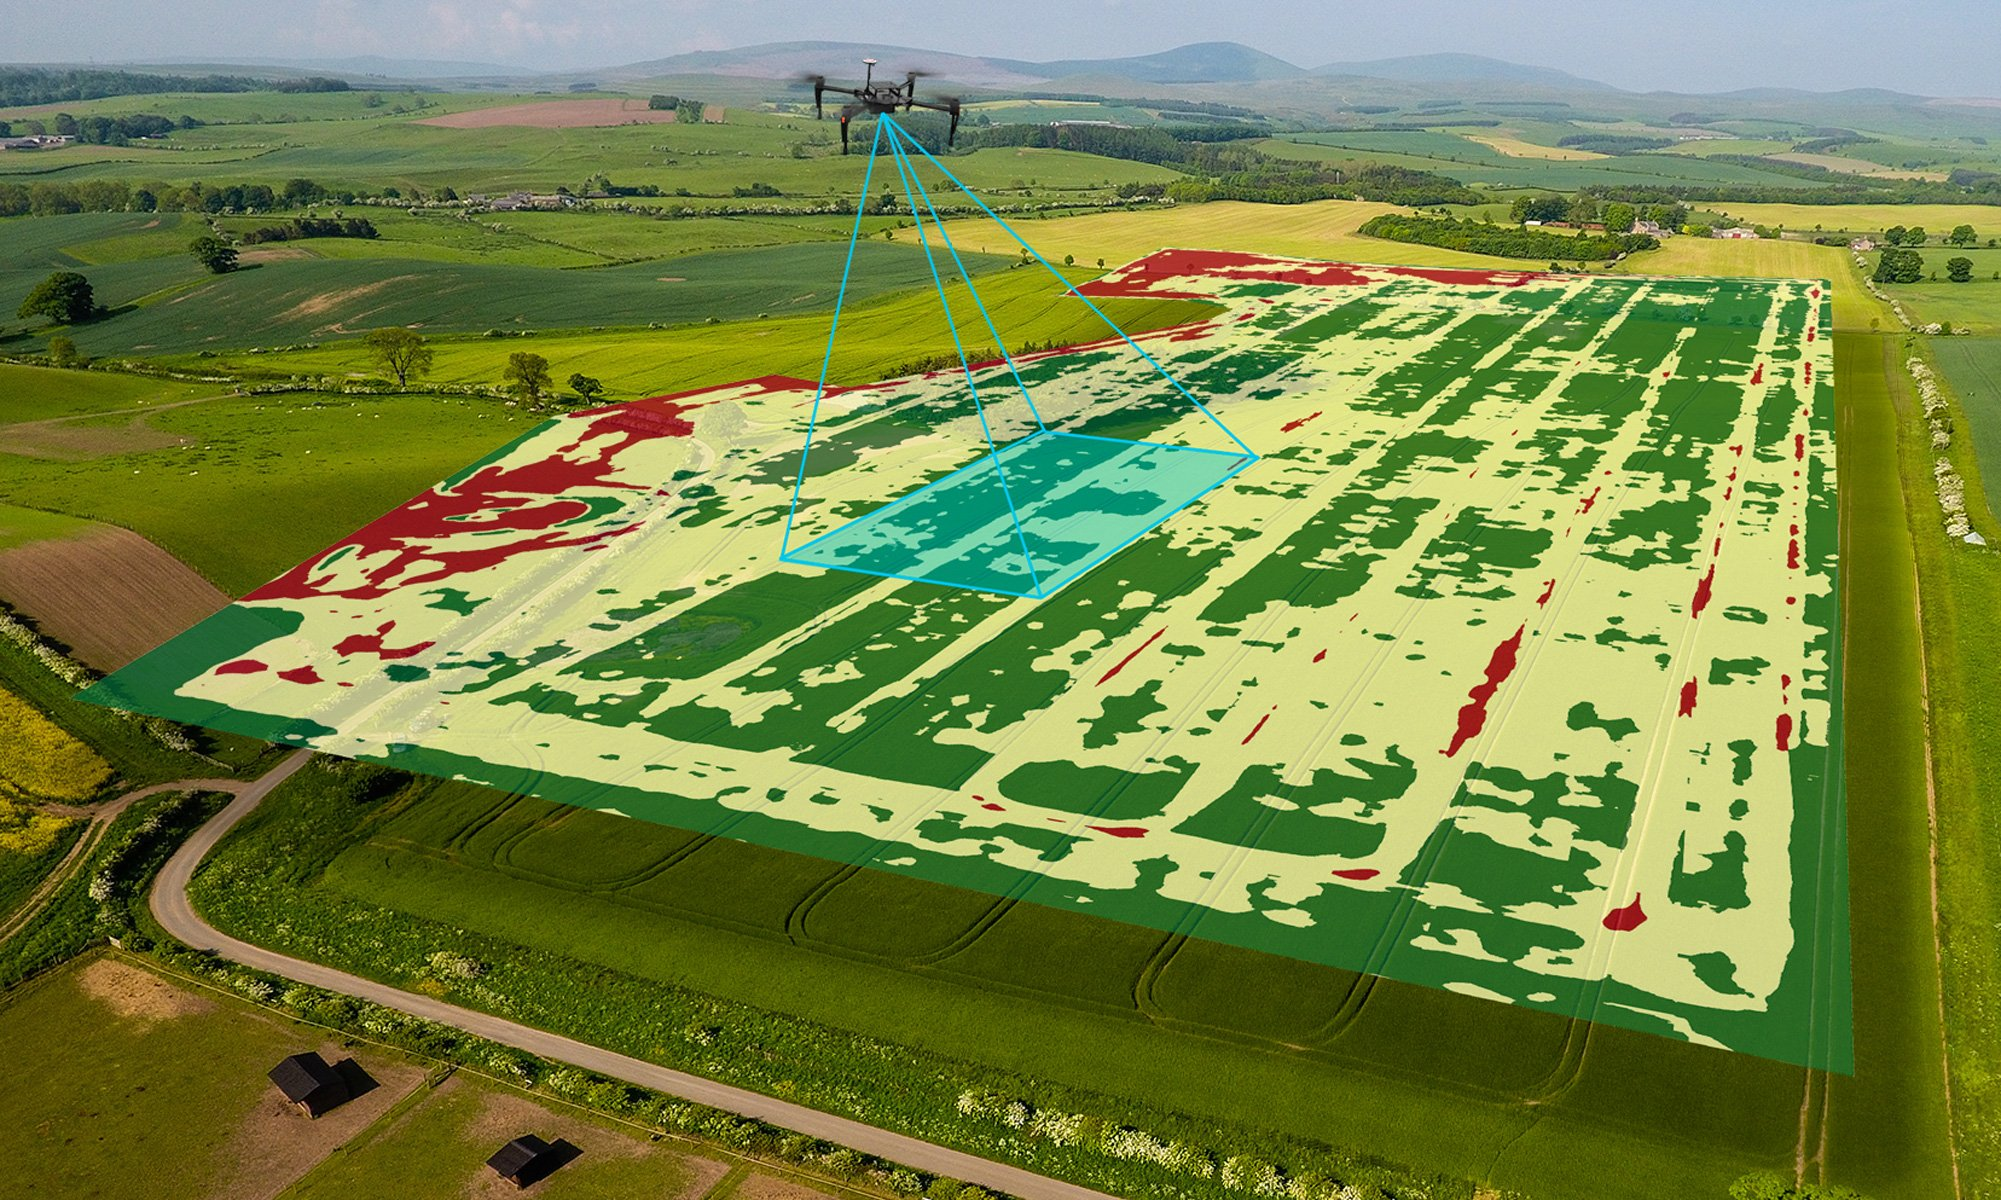 drones for mapping agriculture prescriptions